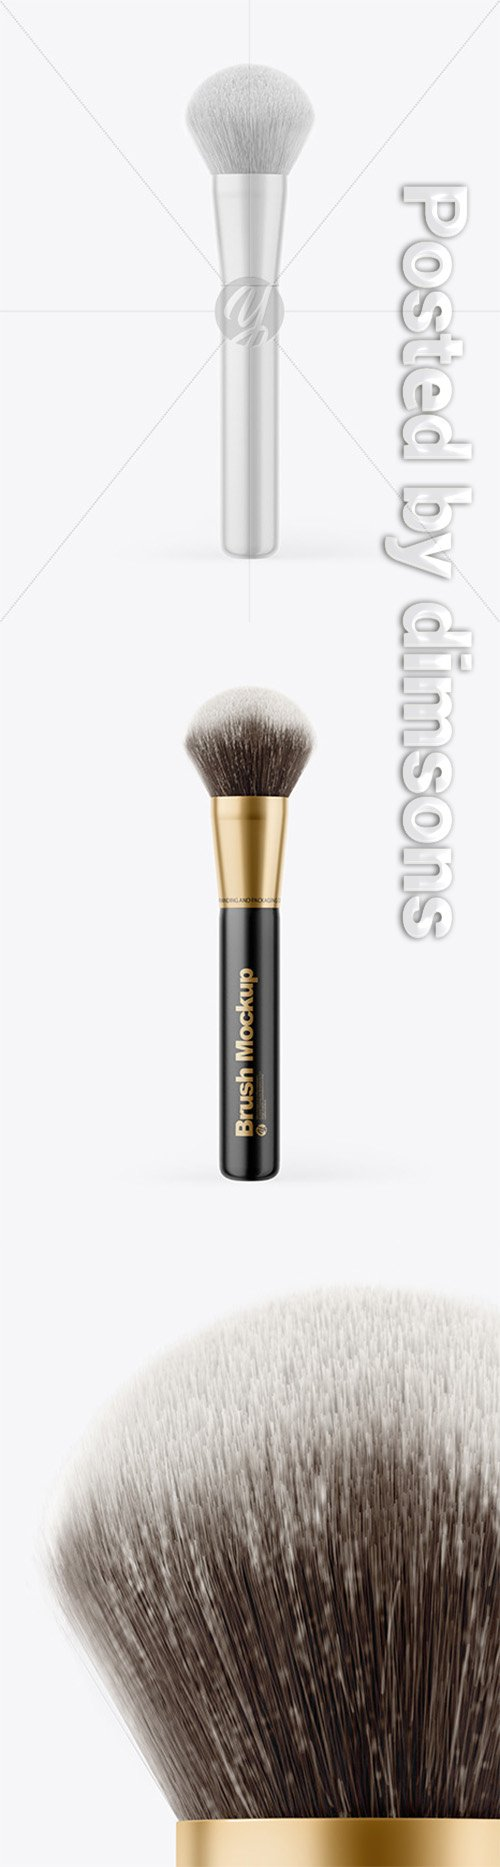 Glossy Powder Brush Mockup 66394 TIF